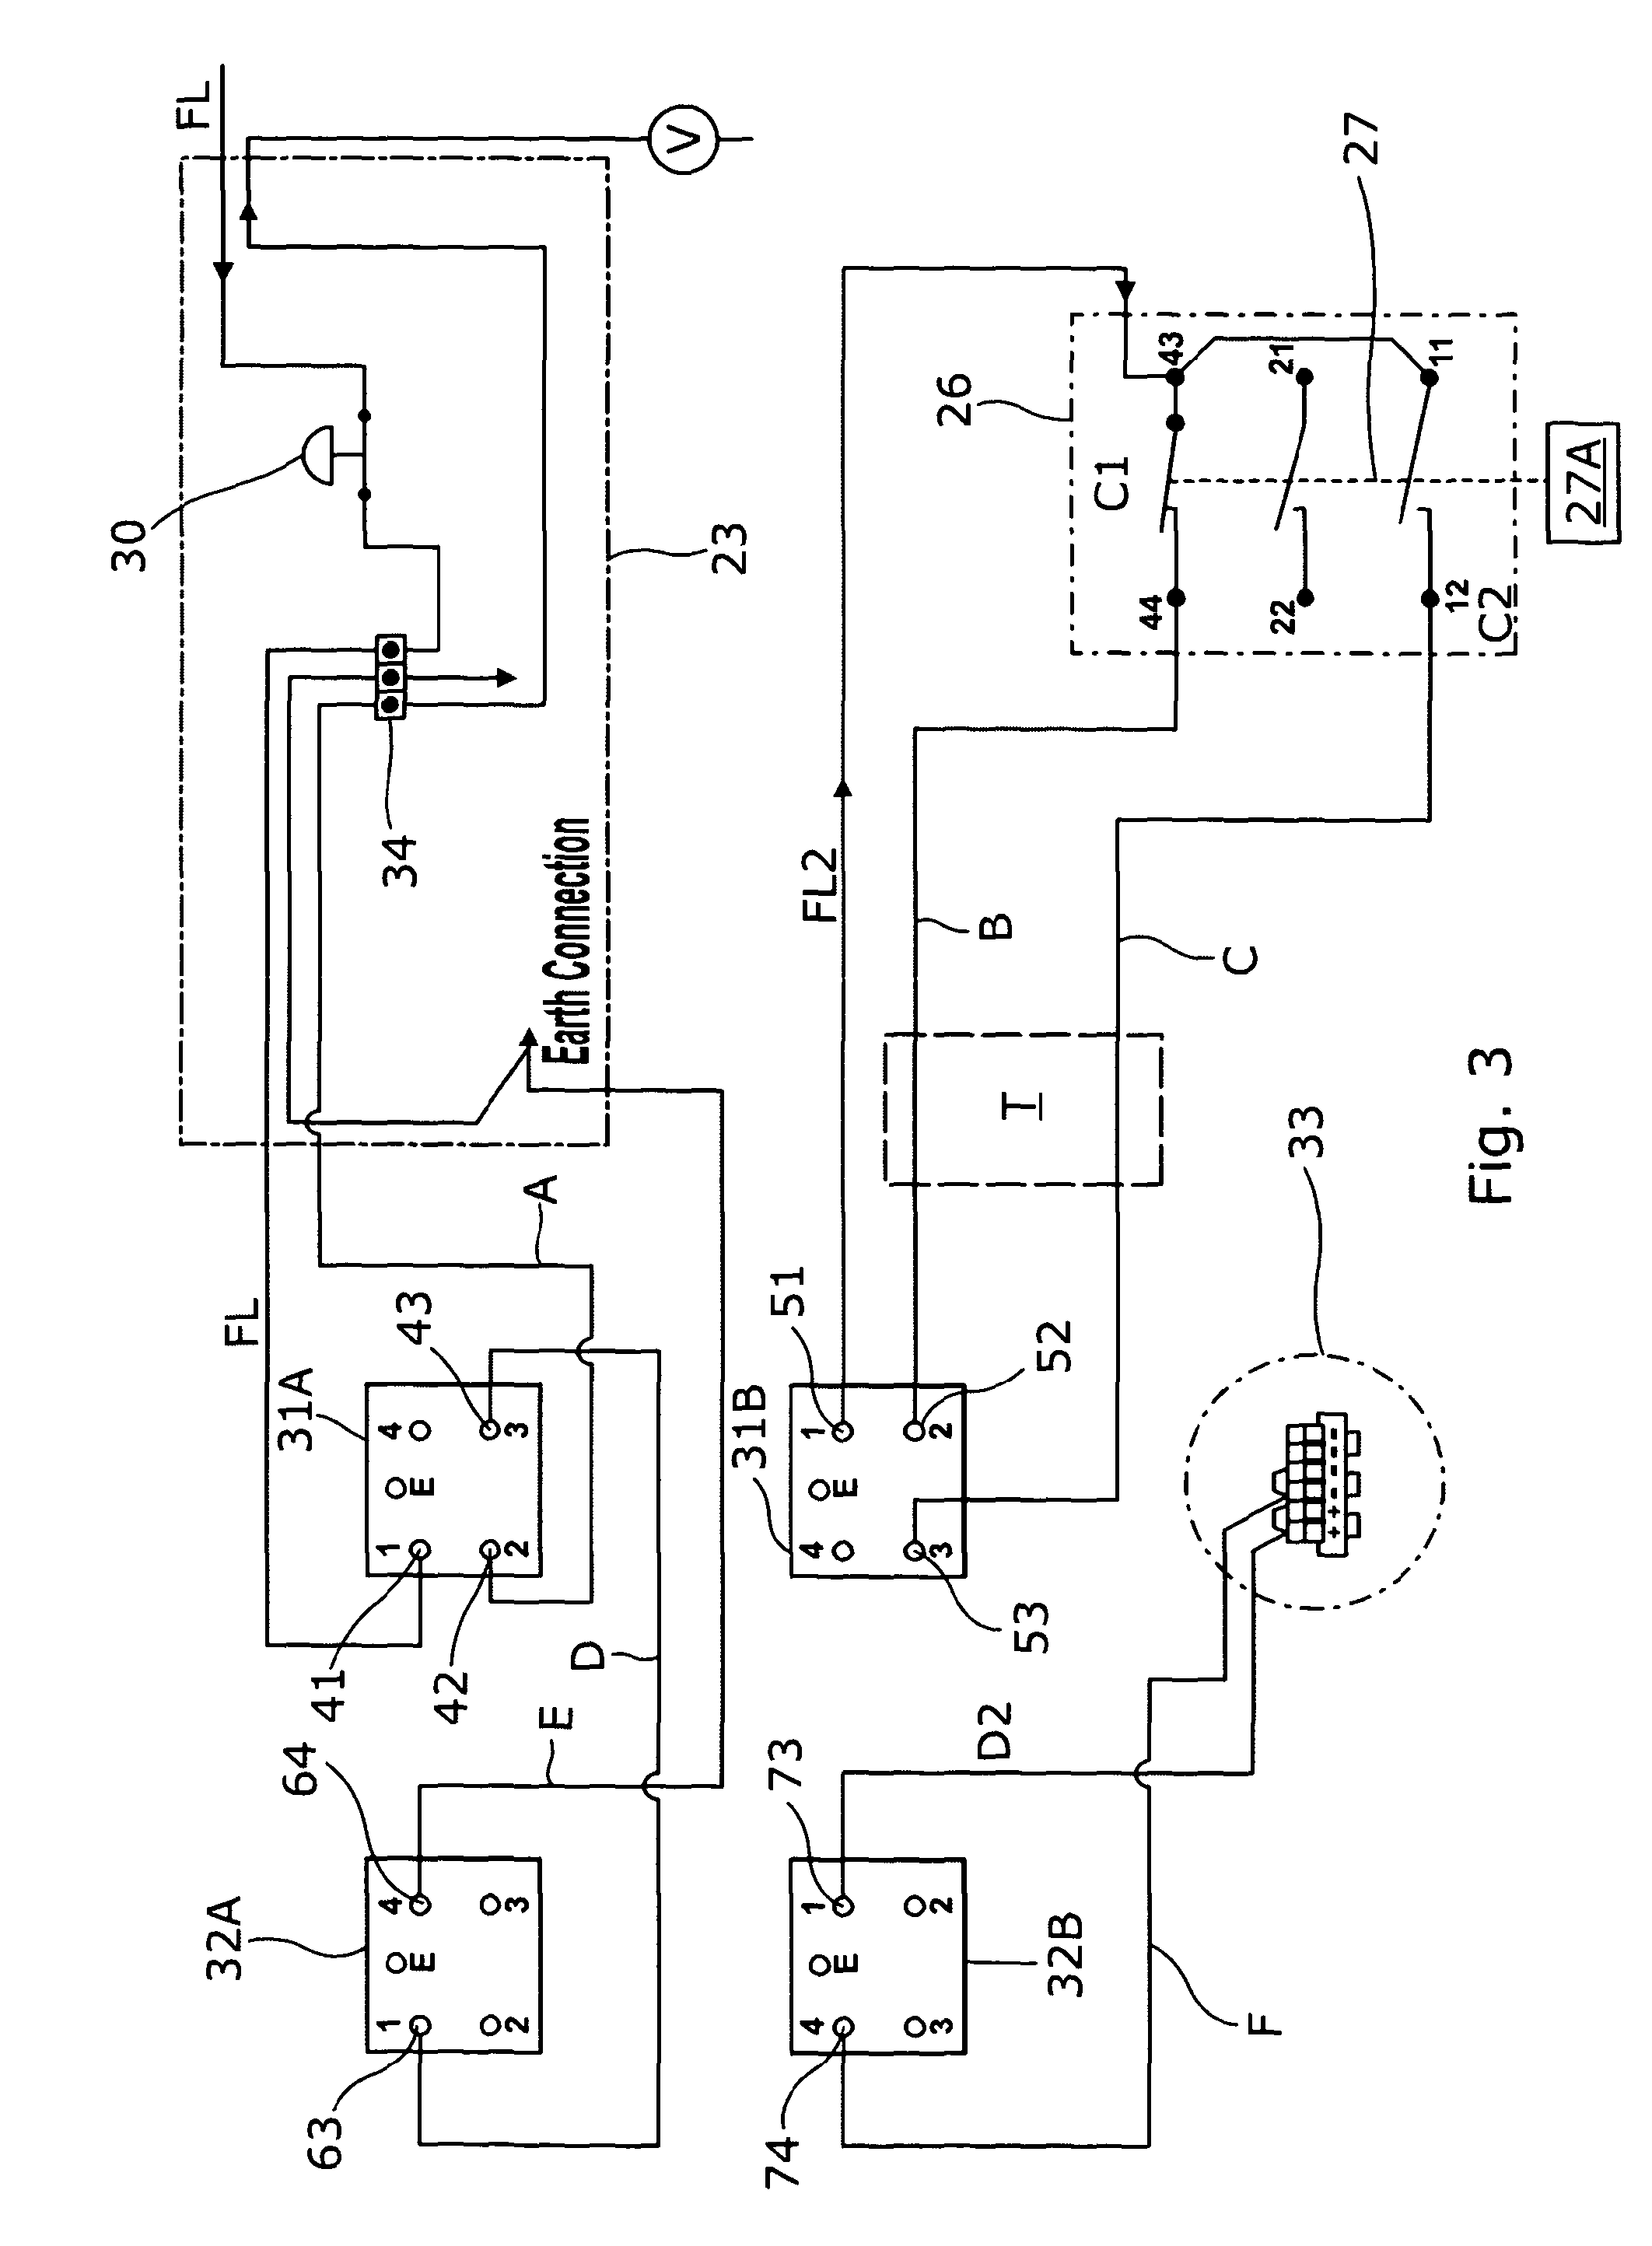 Wiring Diagram Source 1